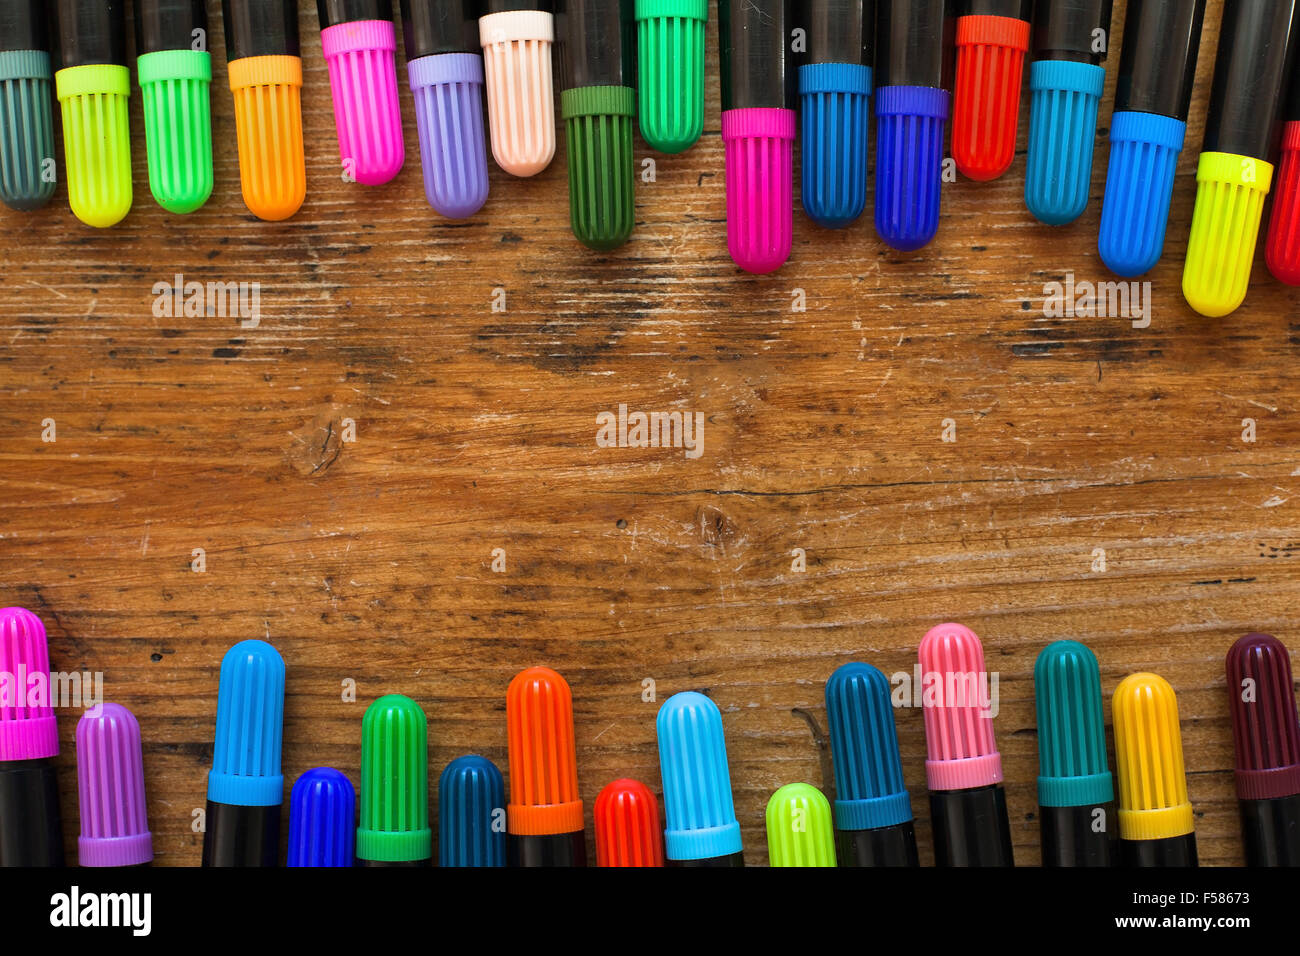 colorful markers on wooden desk, background - Stock Image